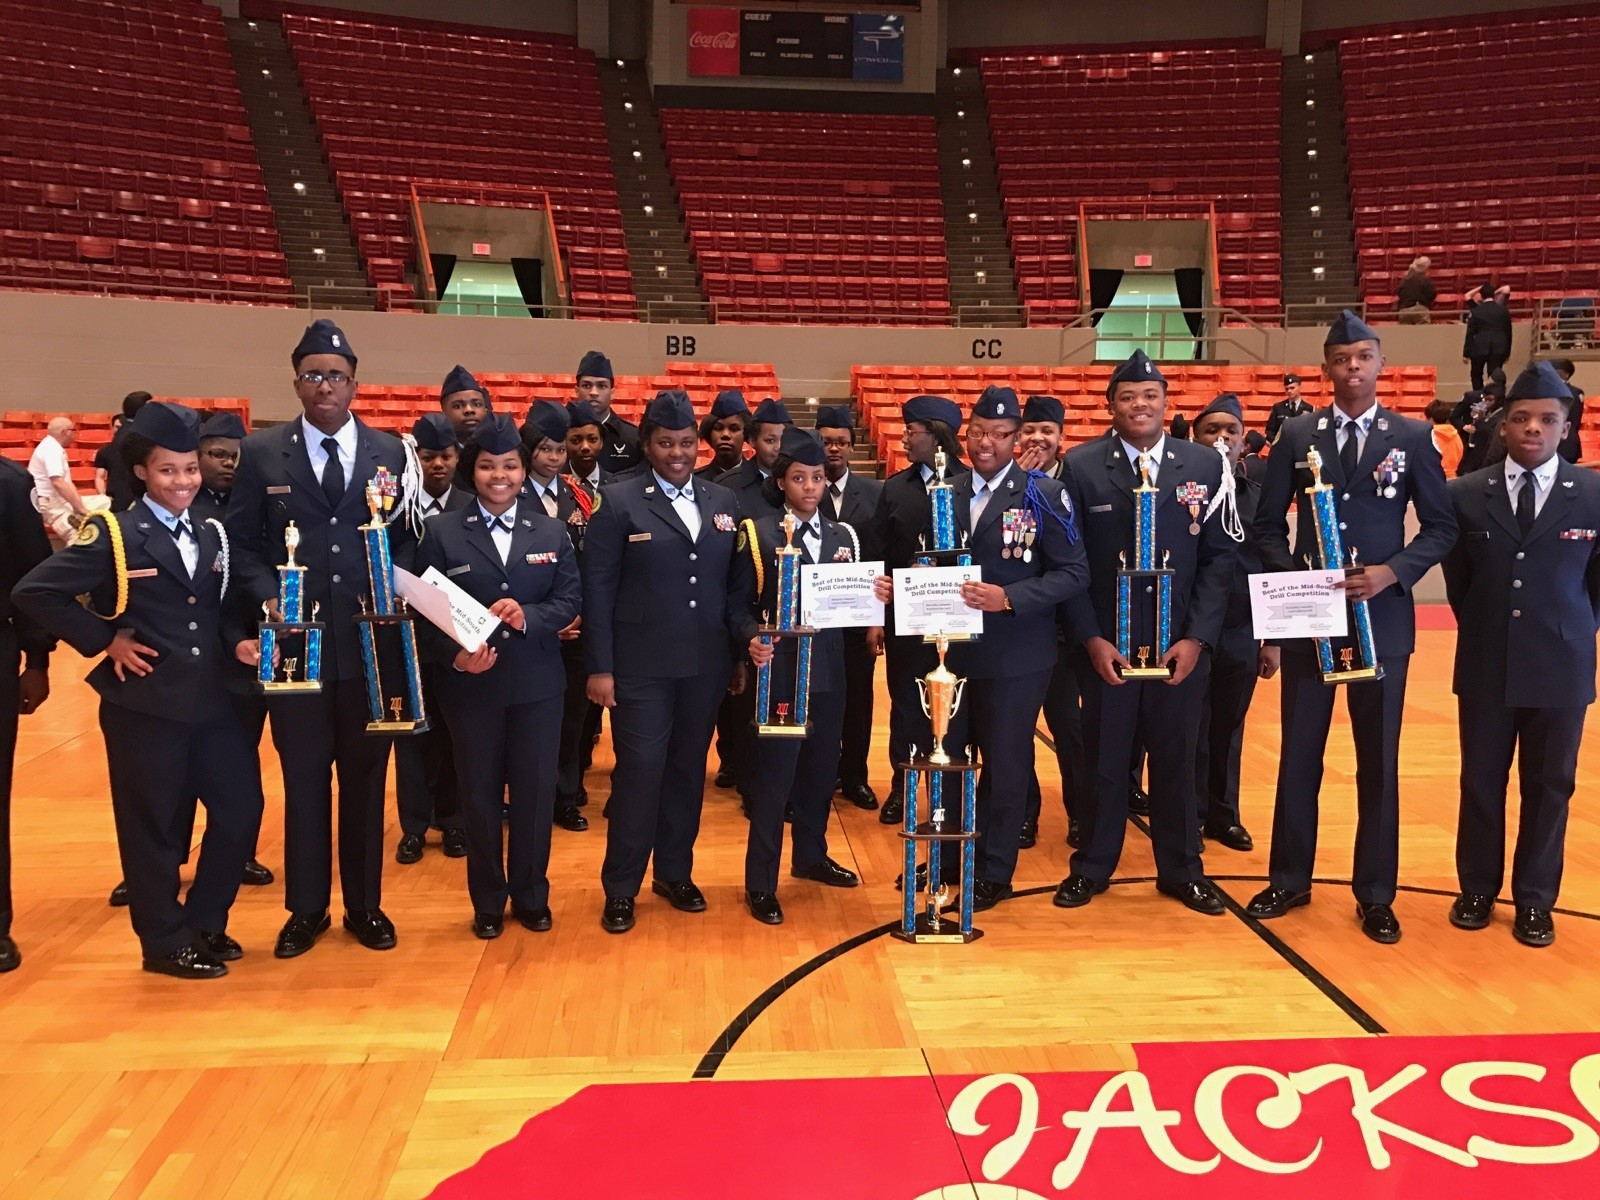 MS-951 Air Force JROTC Places 2nd Overall in Drill Team Competition